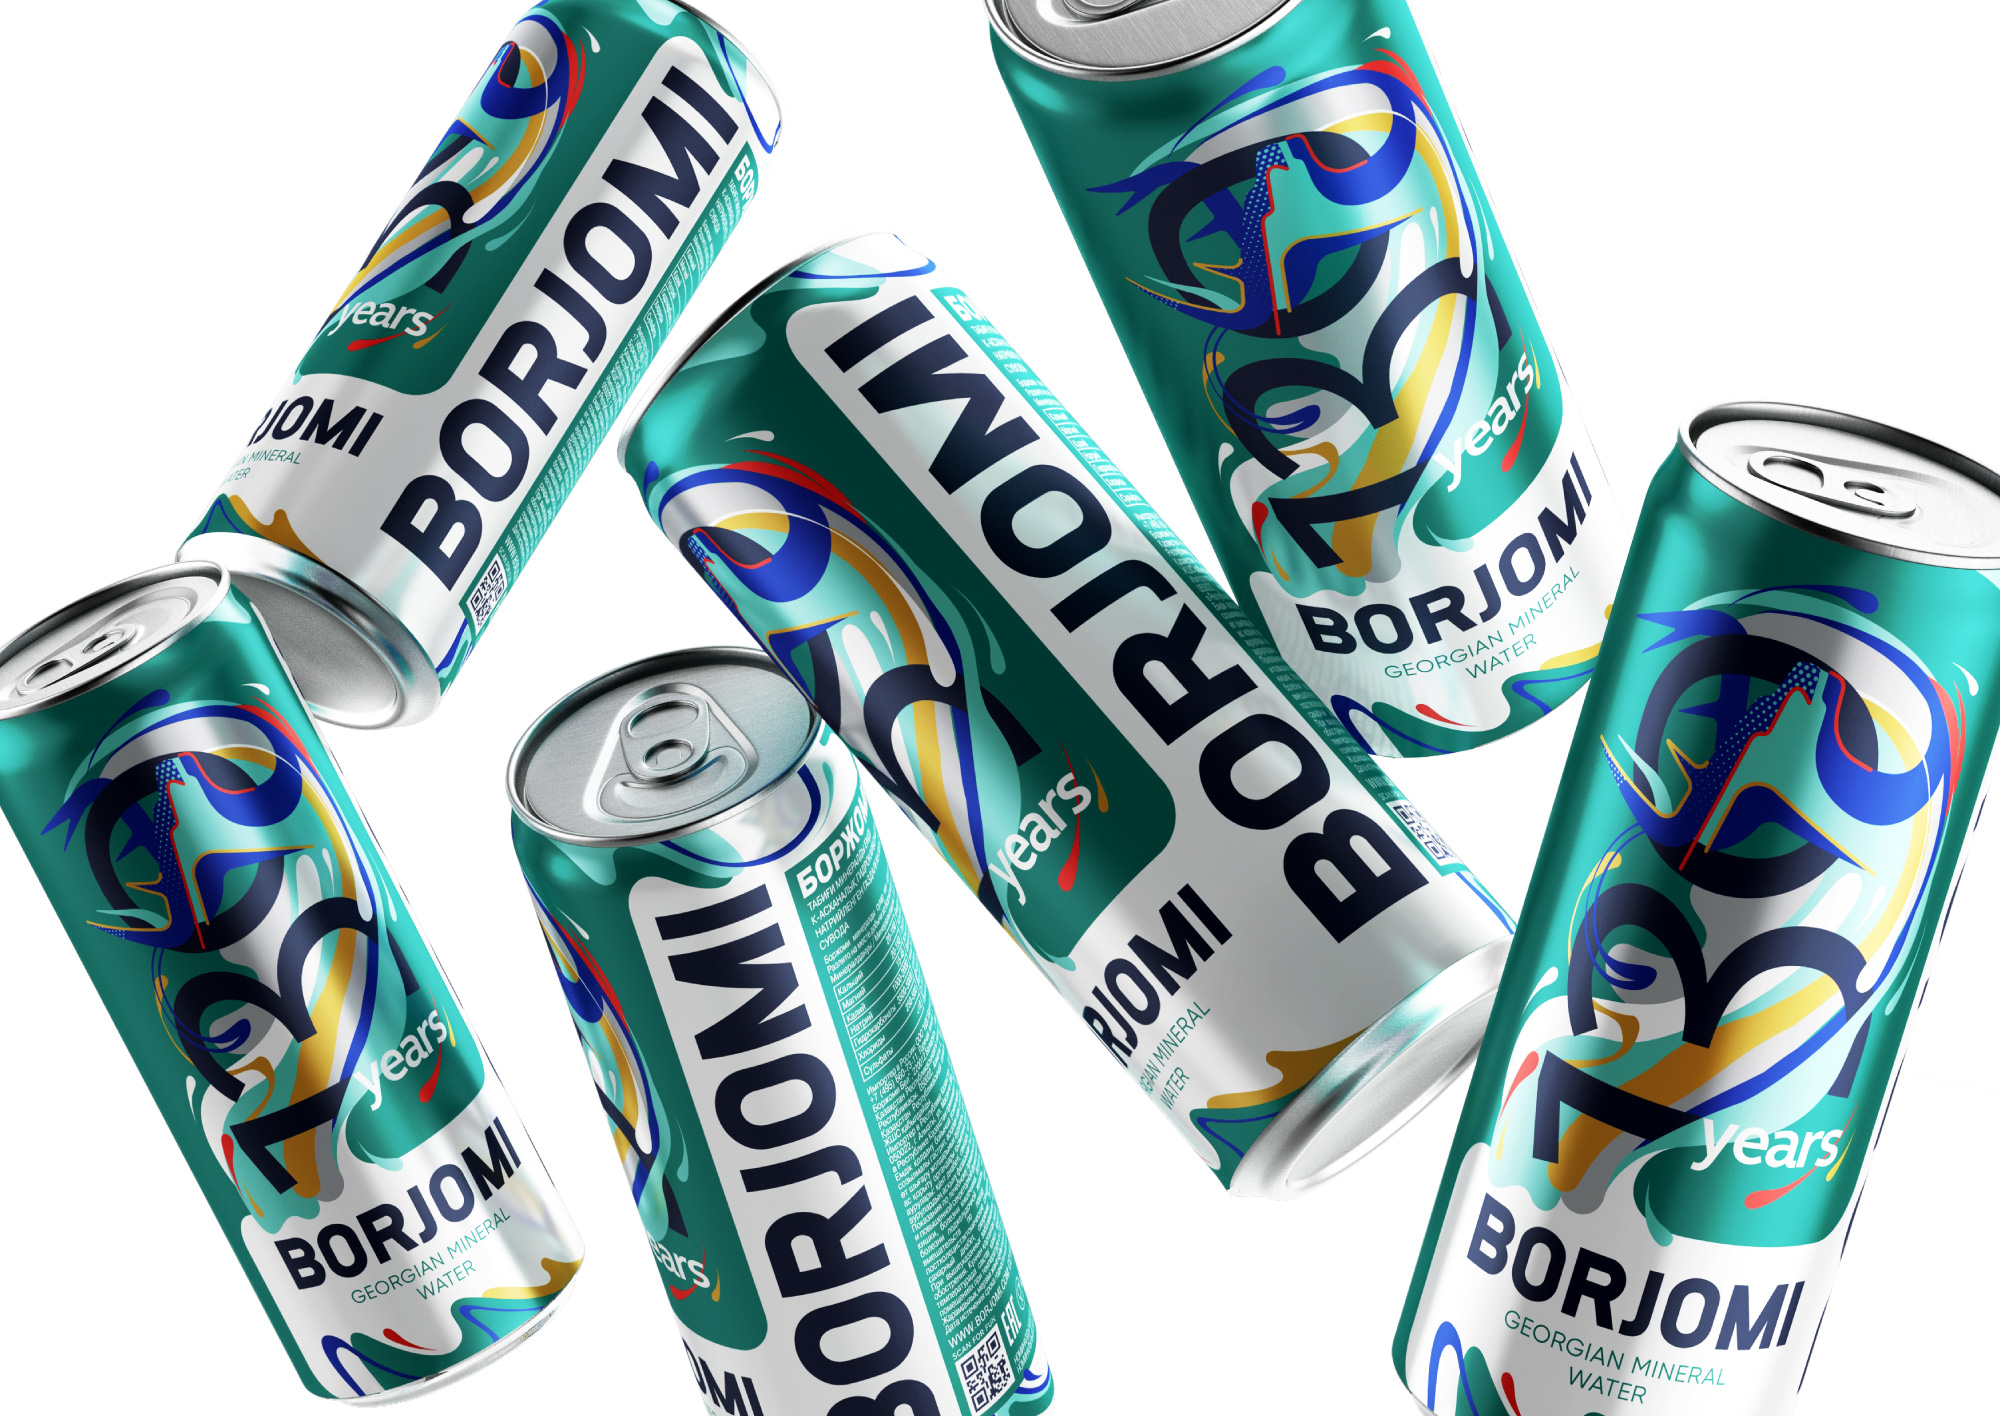 Reynolds and Reyner Create Borjomi Georgian Mineral Water 130th Anniversary Collection